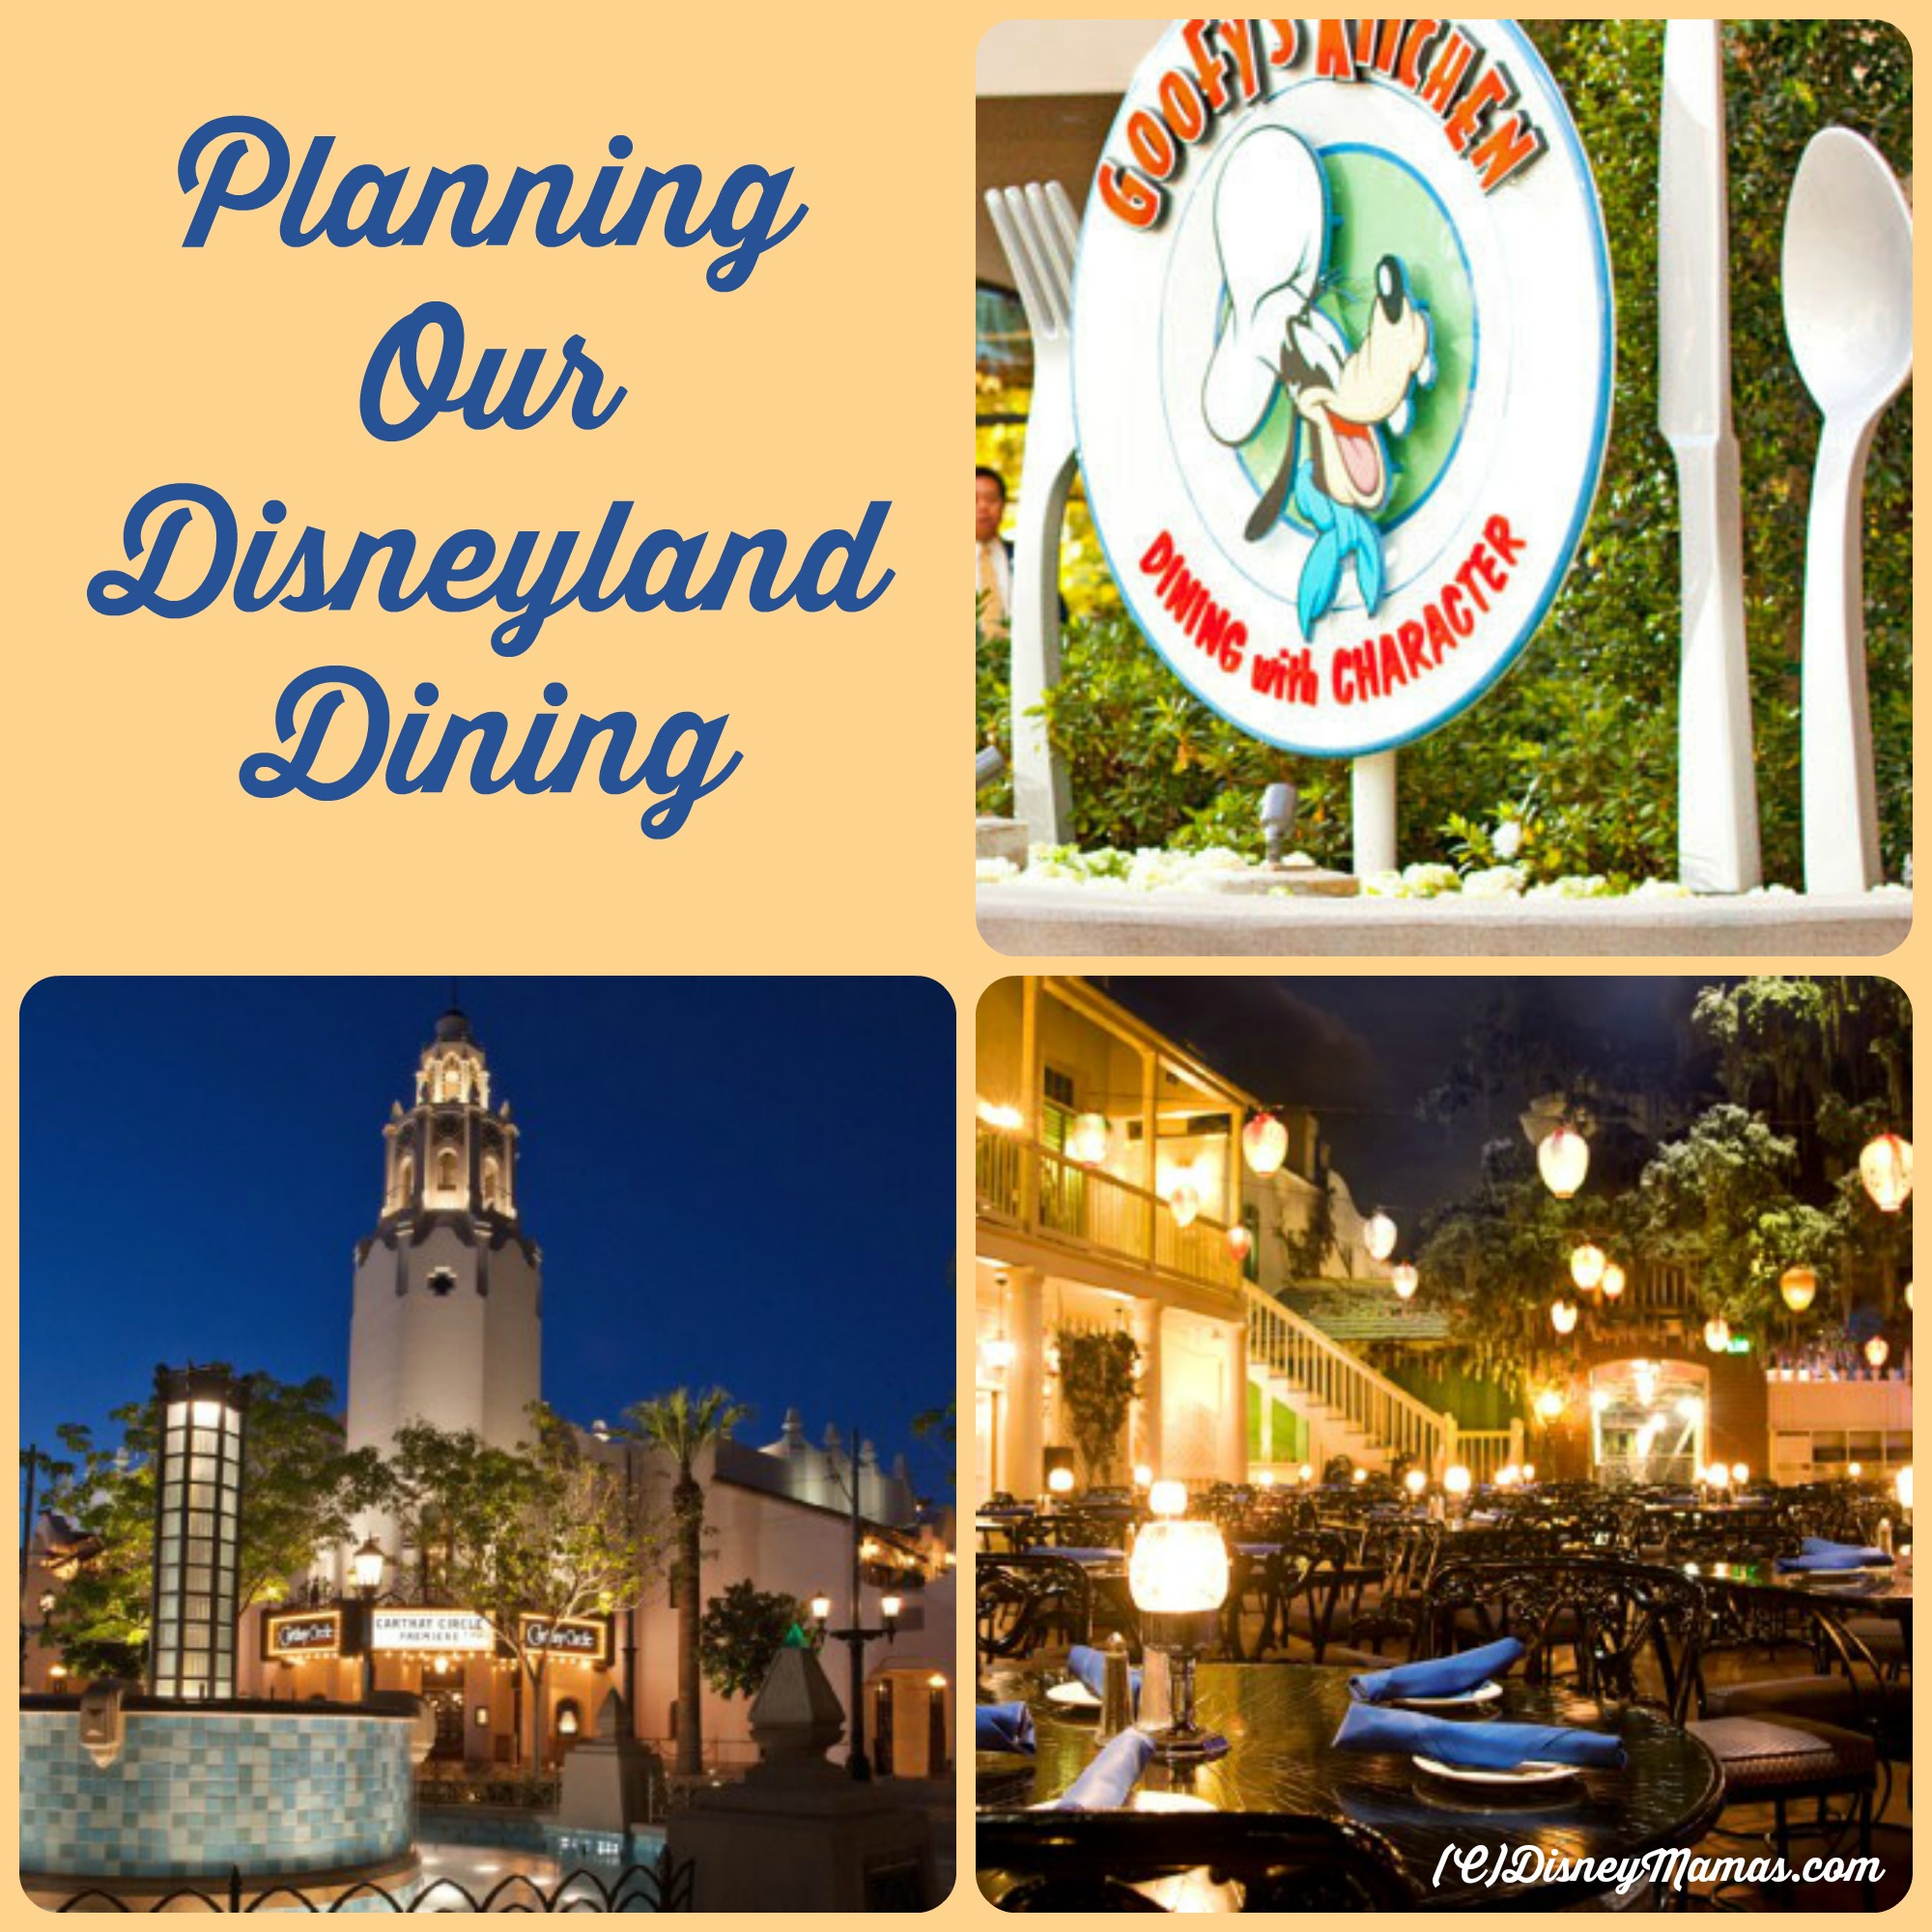 Planning Our Disneyland Dining